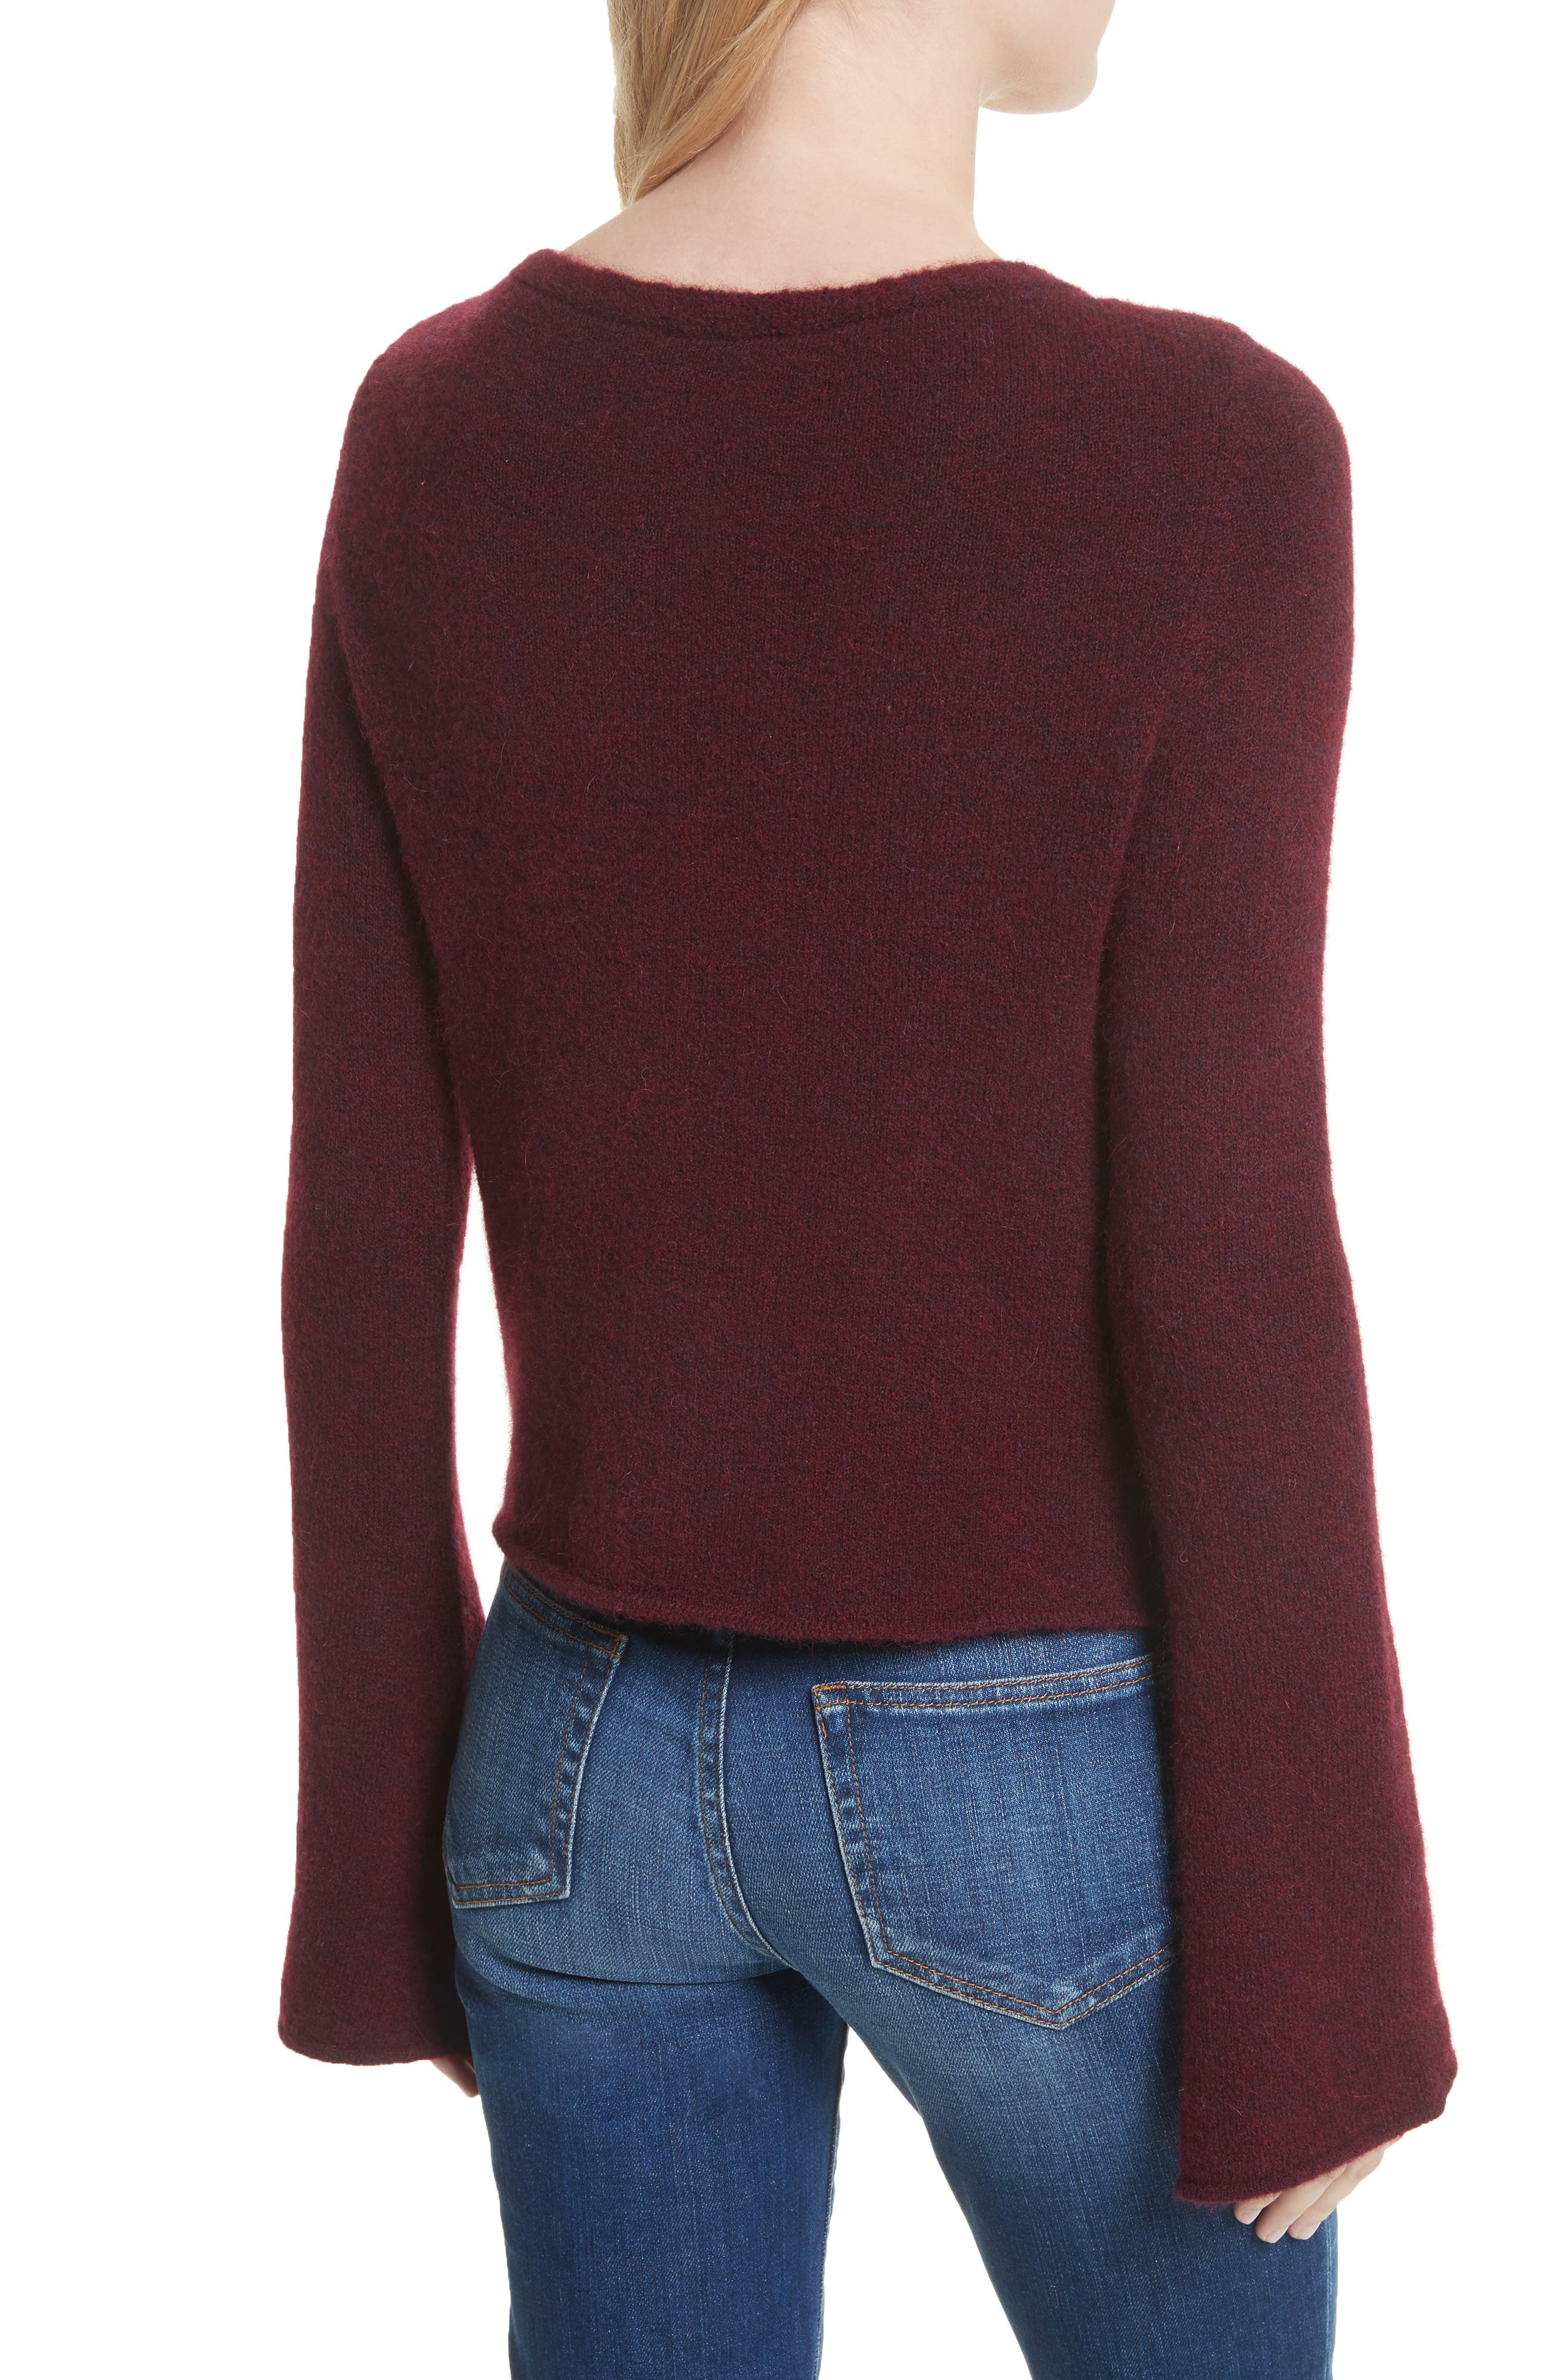 Candela Lace-Up Sweater,                             Alternate thumbnail 2, color,                             600